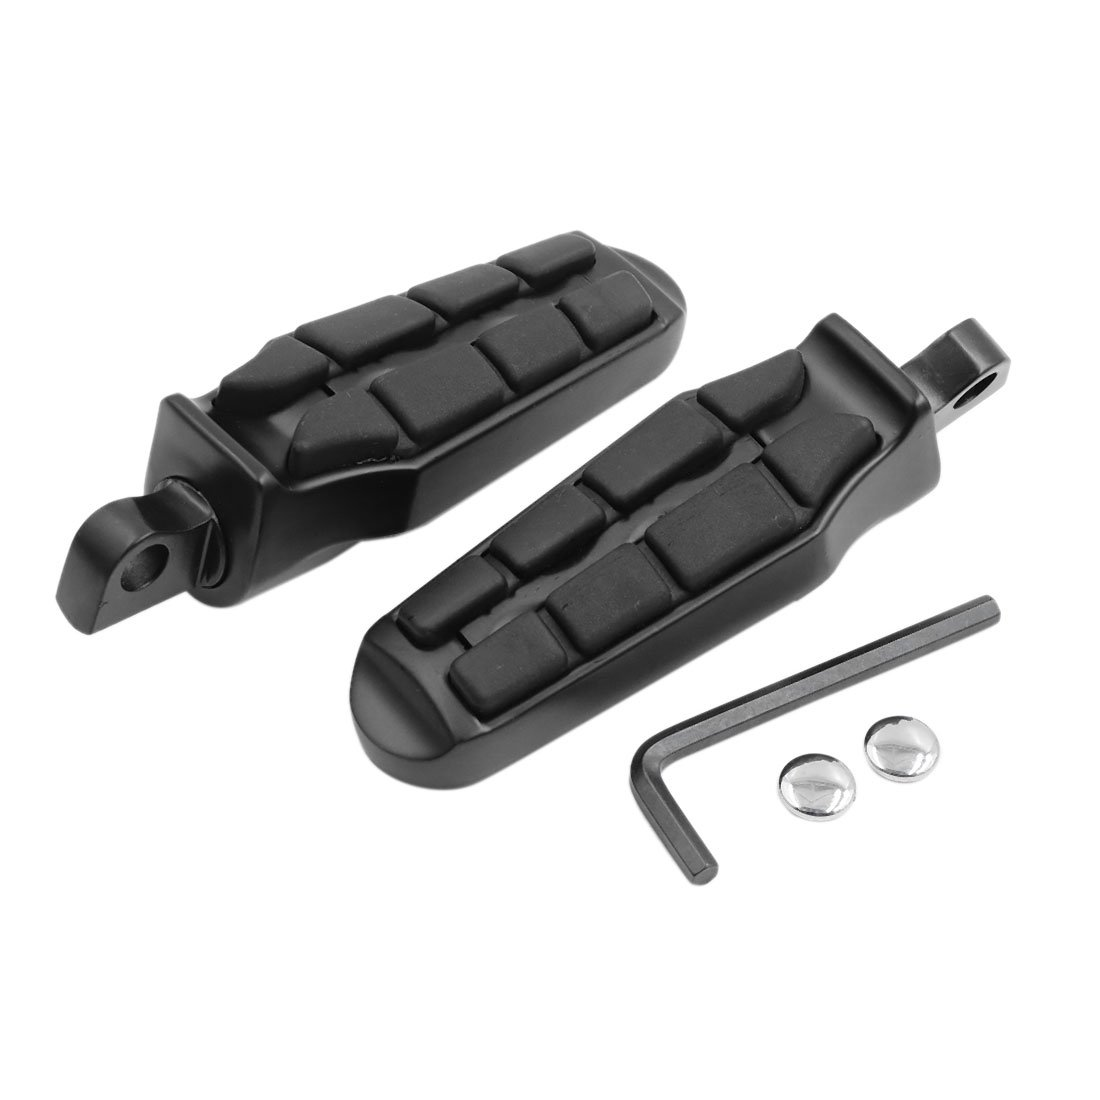 F FIERCE CYCLE 2pcs Rubber Aluminum Alloy Black Male Motorcycle Foot Pegs Rest Pedal for Harley Davidson